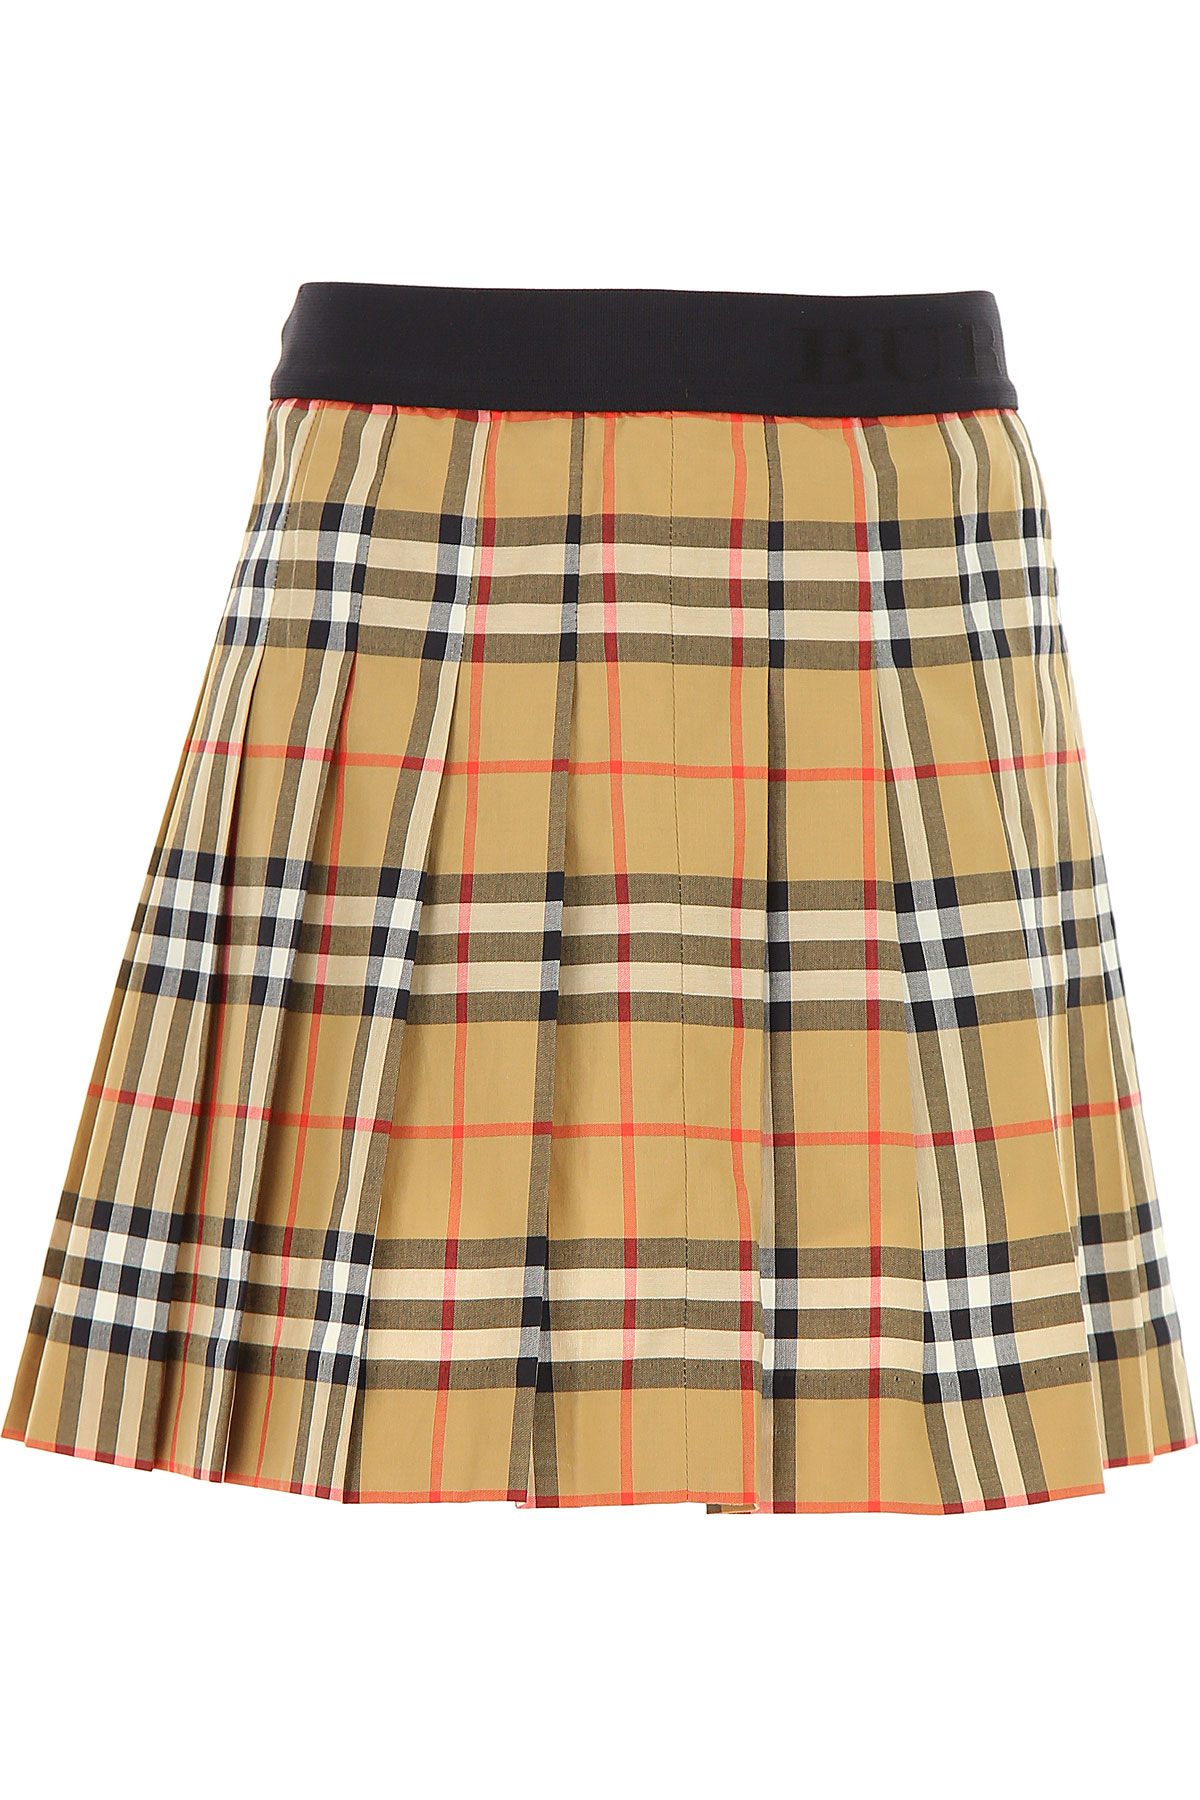 Image of Burberry Kids Skirts for Girls, Brown, Cotton, 2017, 10Y 4Y 6Y 8Y